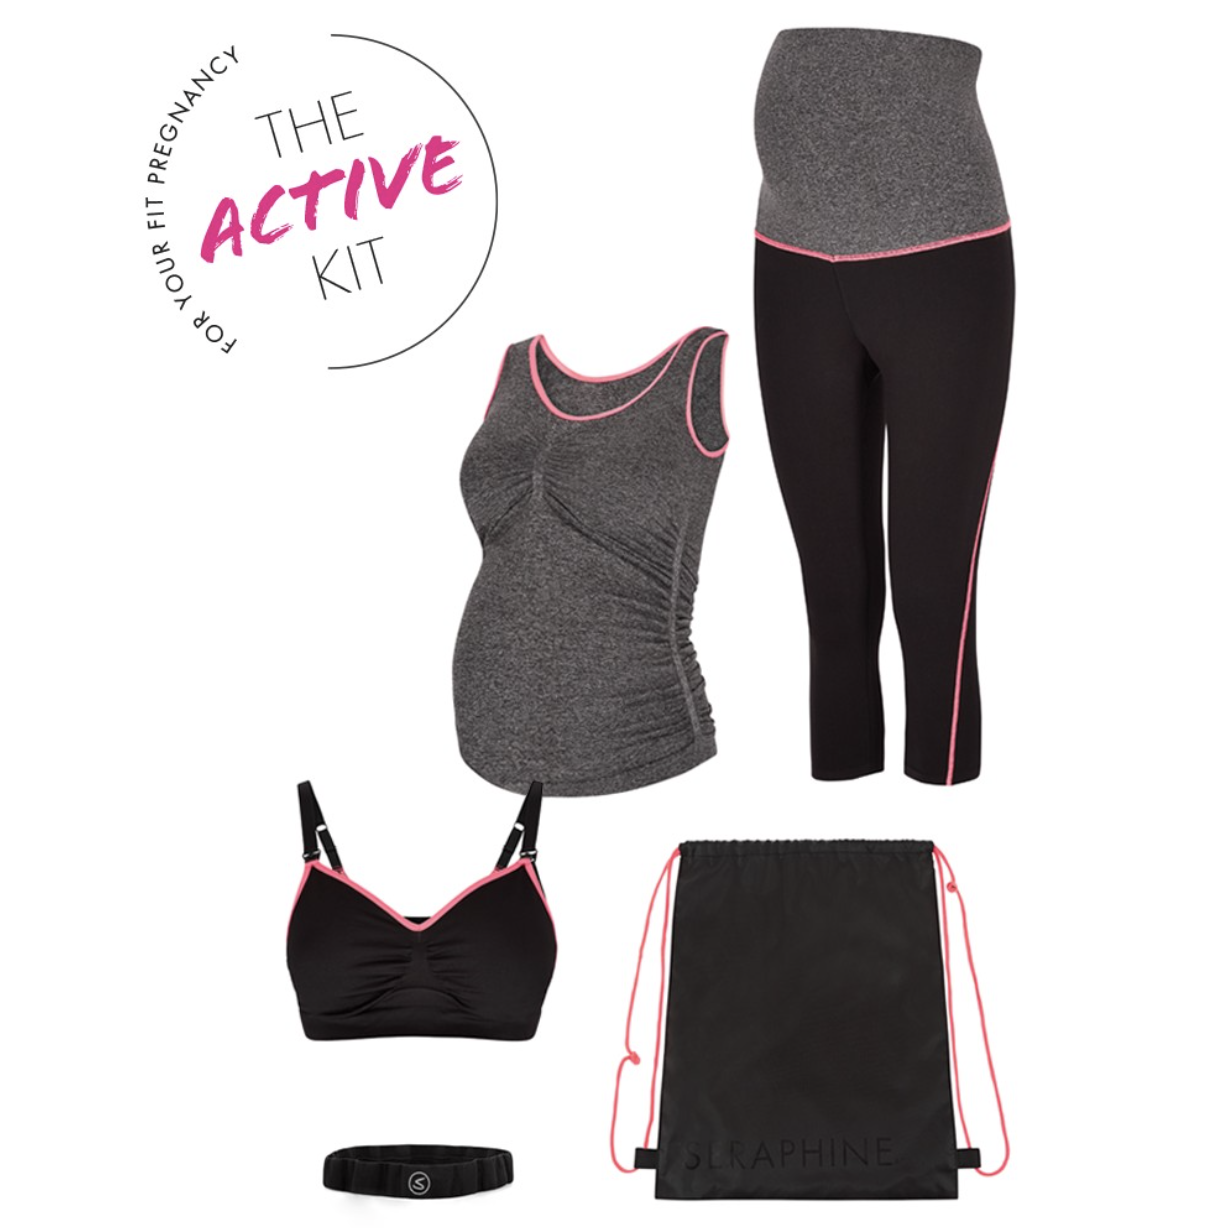 The Active Kit - Pregnancy Yoga & Sportswear